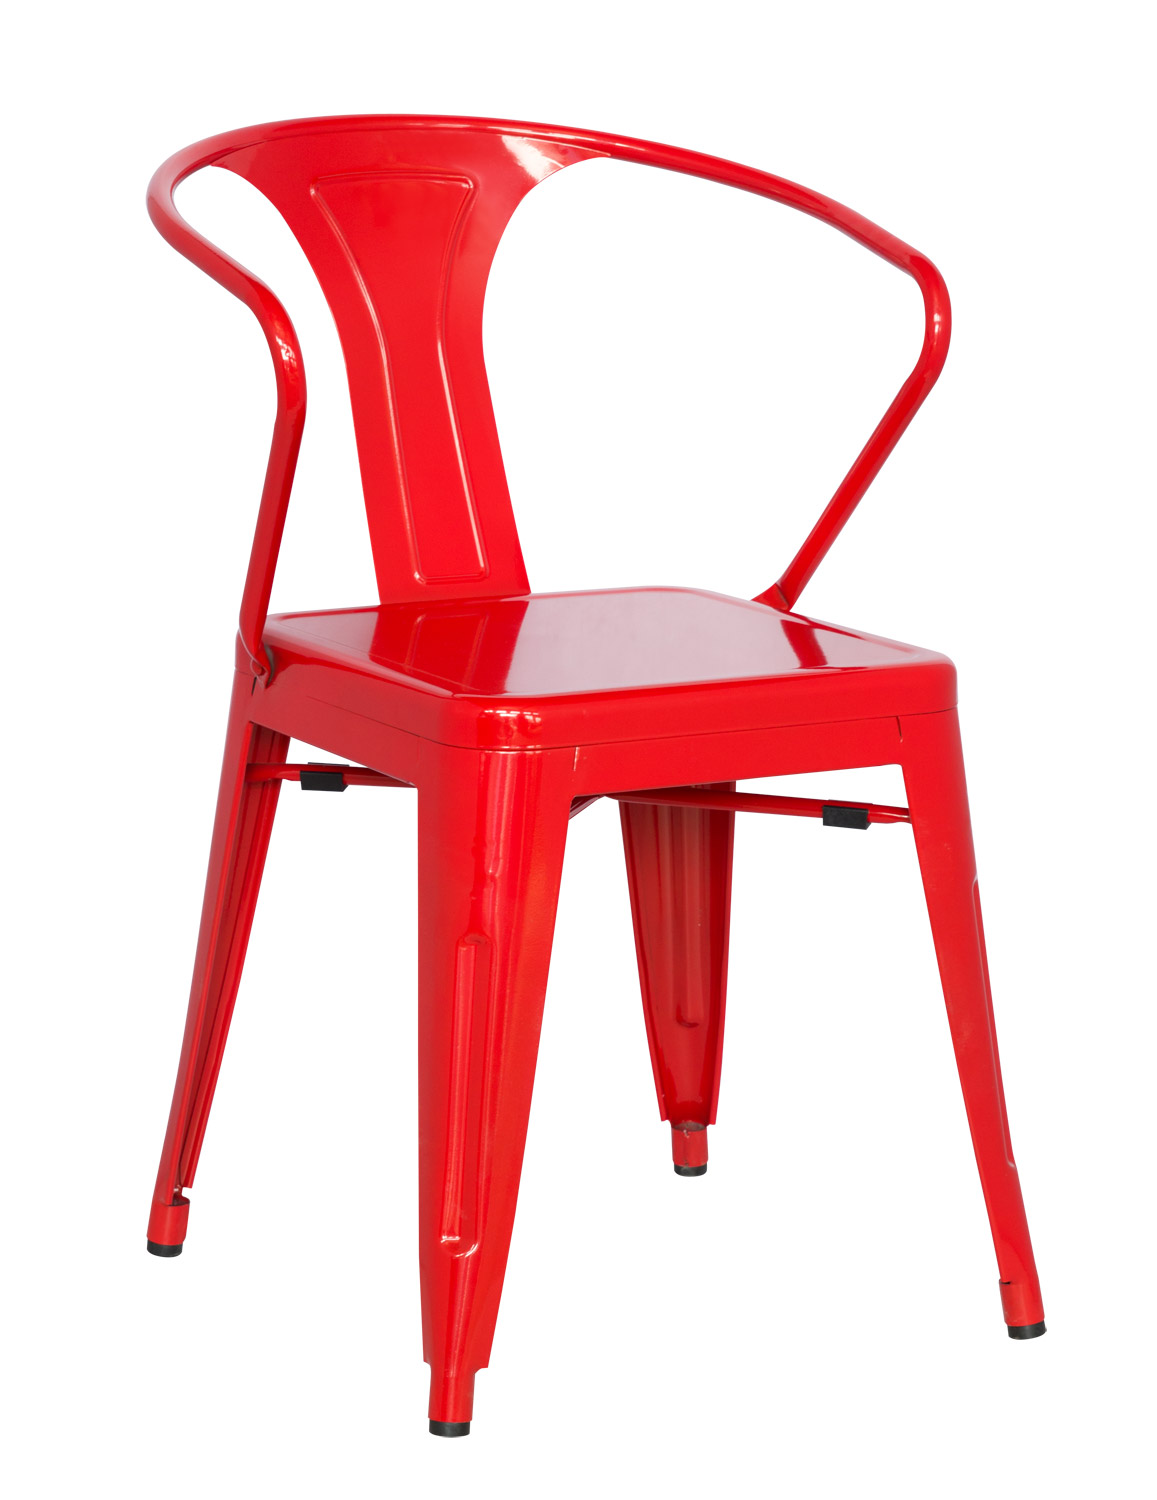 Galvanized Steel Chairs Chintaly Imports 8023 Galvanized Steel Side Chair Red Ci